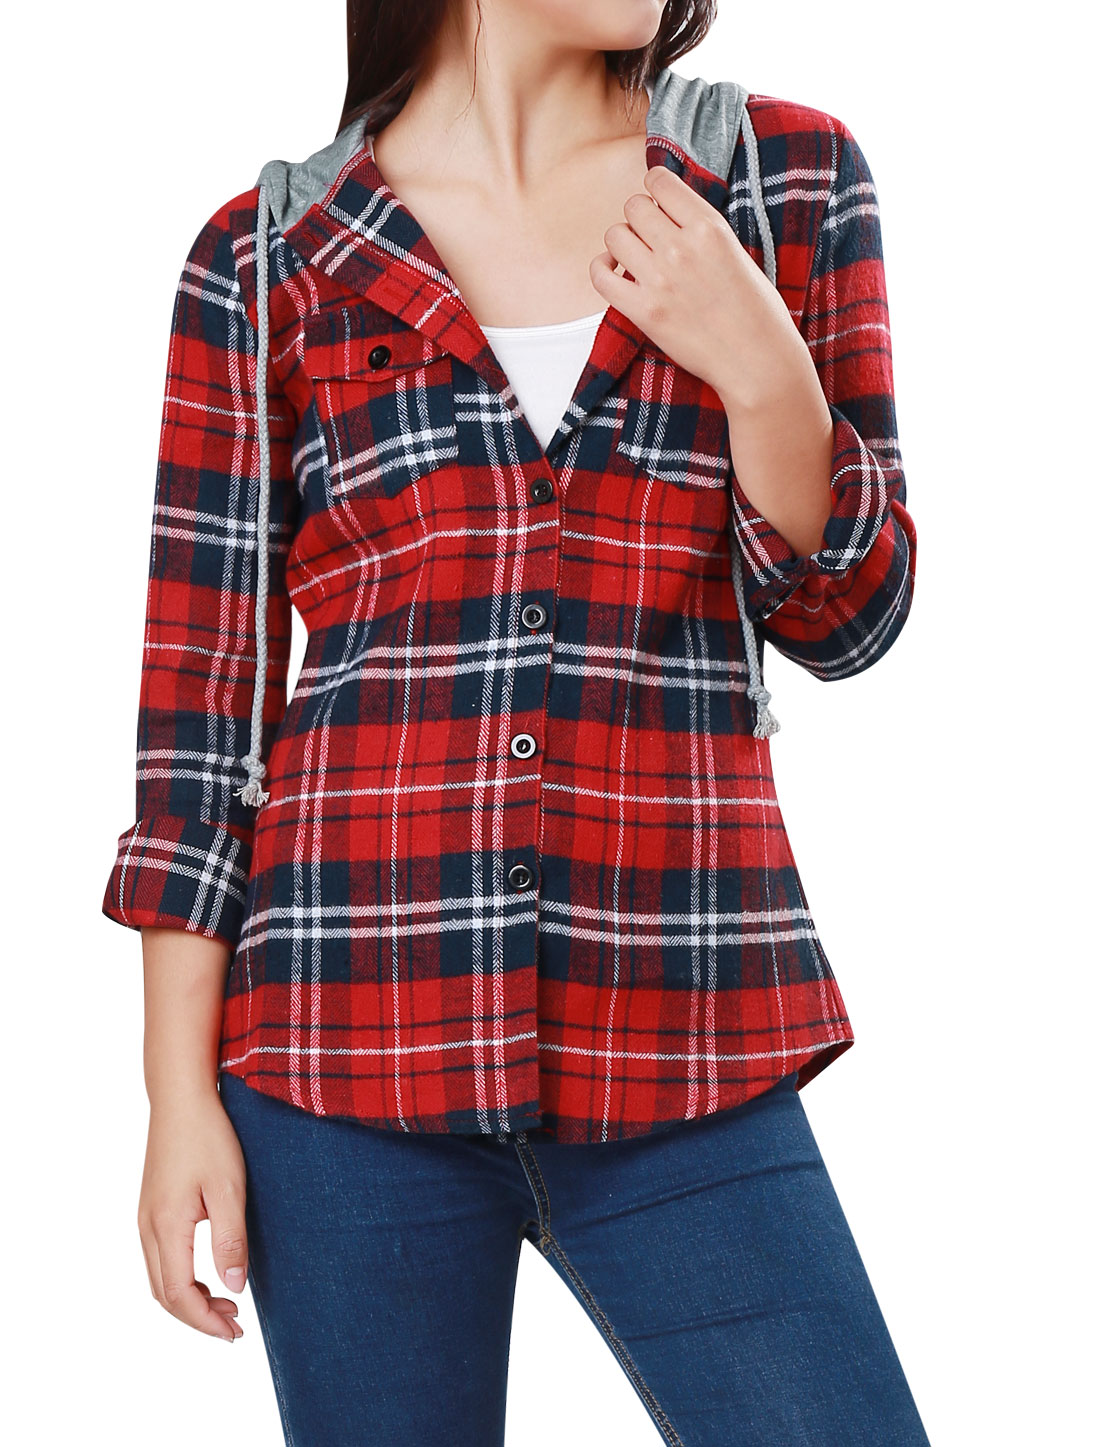 Flap Patch Pockets Long Sleeve Hooded Plaid Shirt Top Red S for Woman